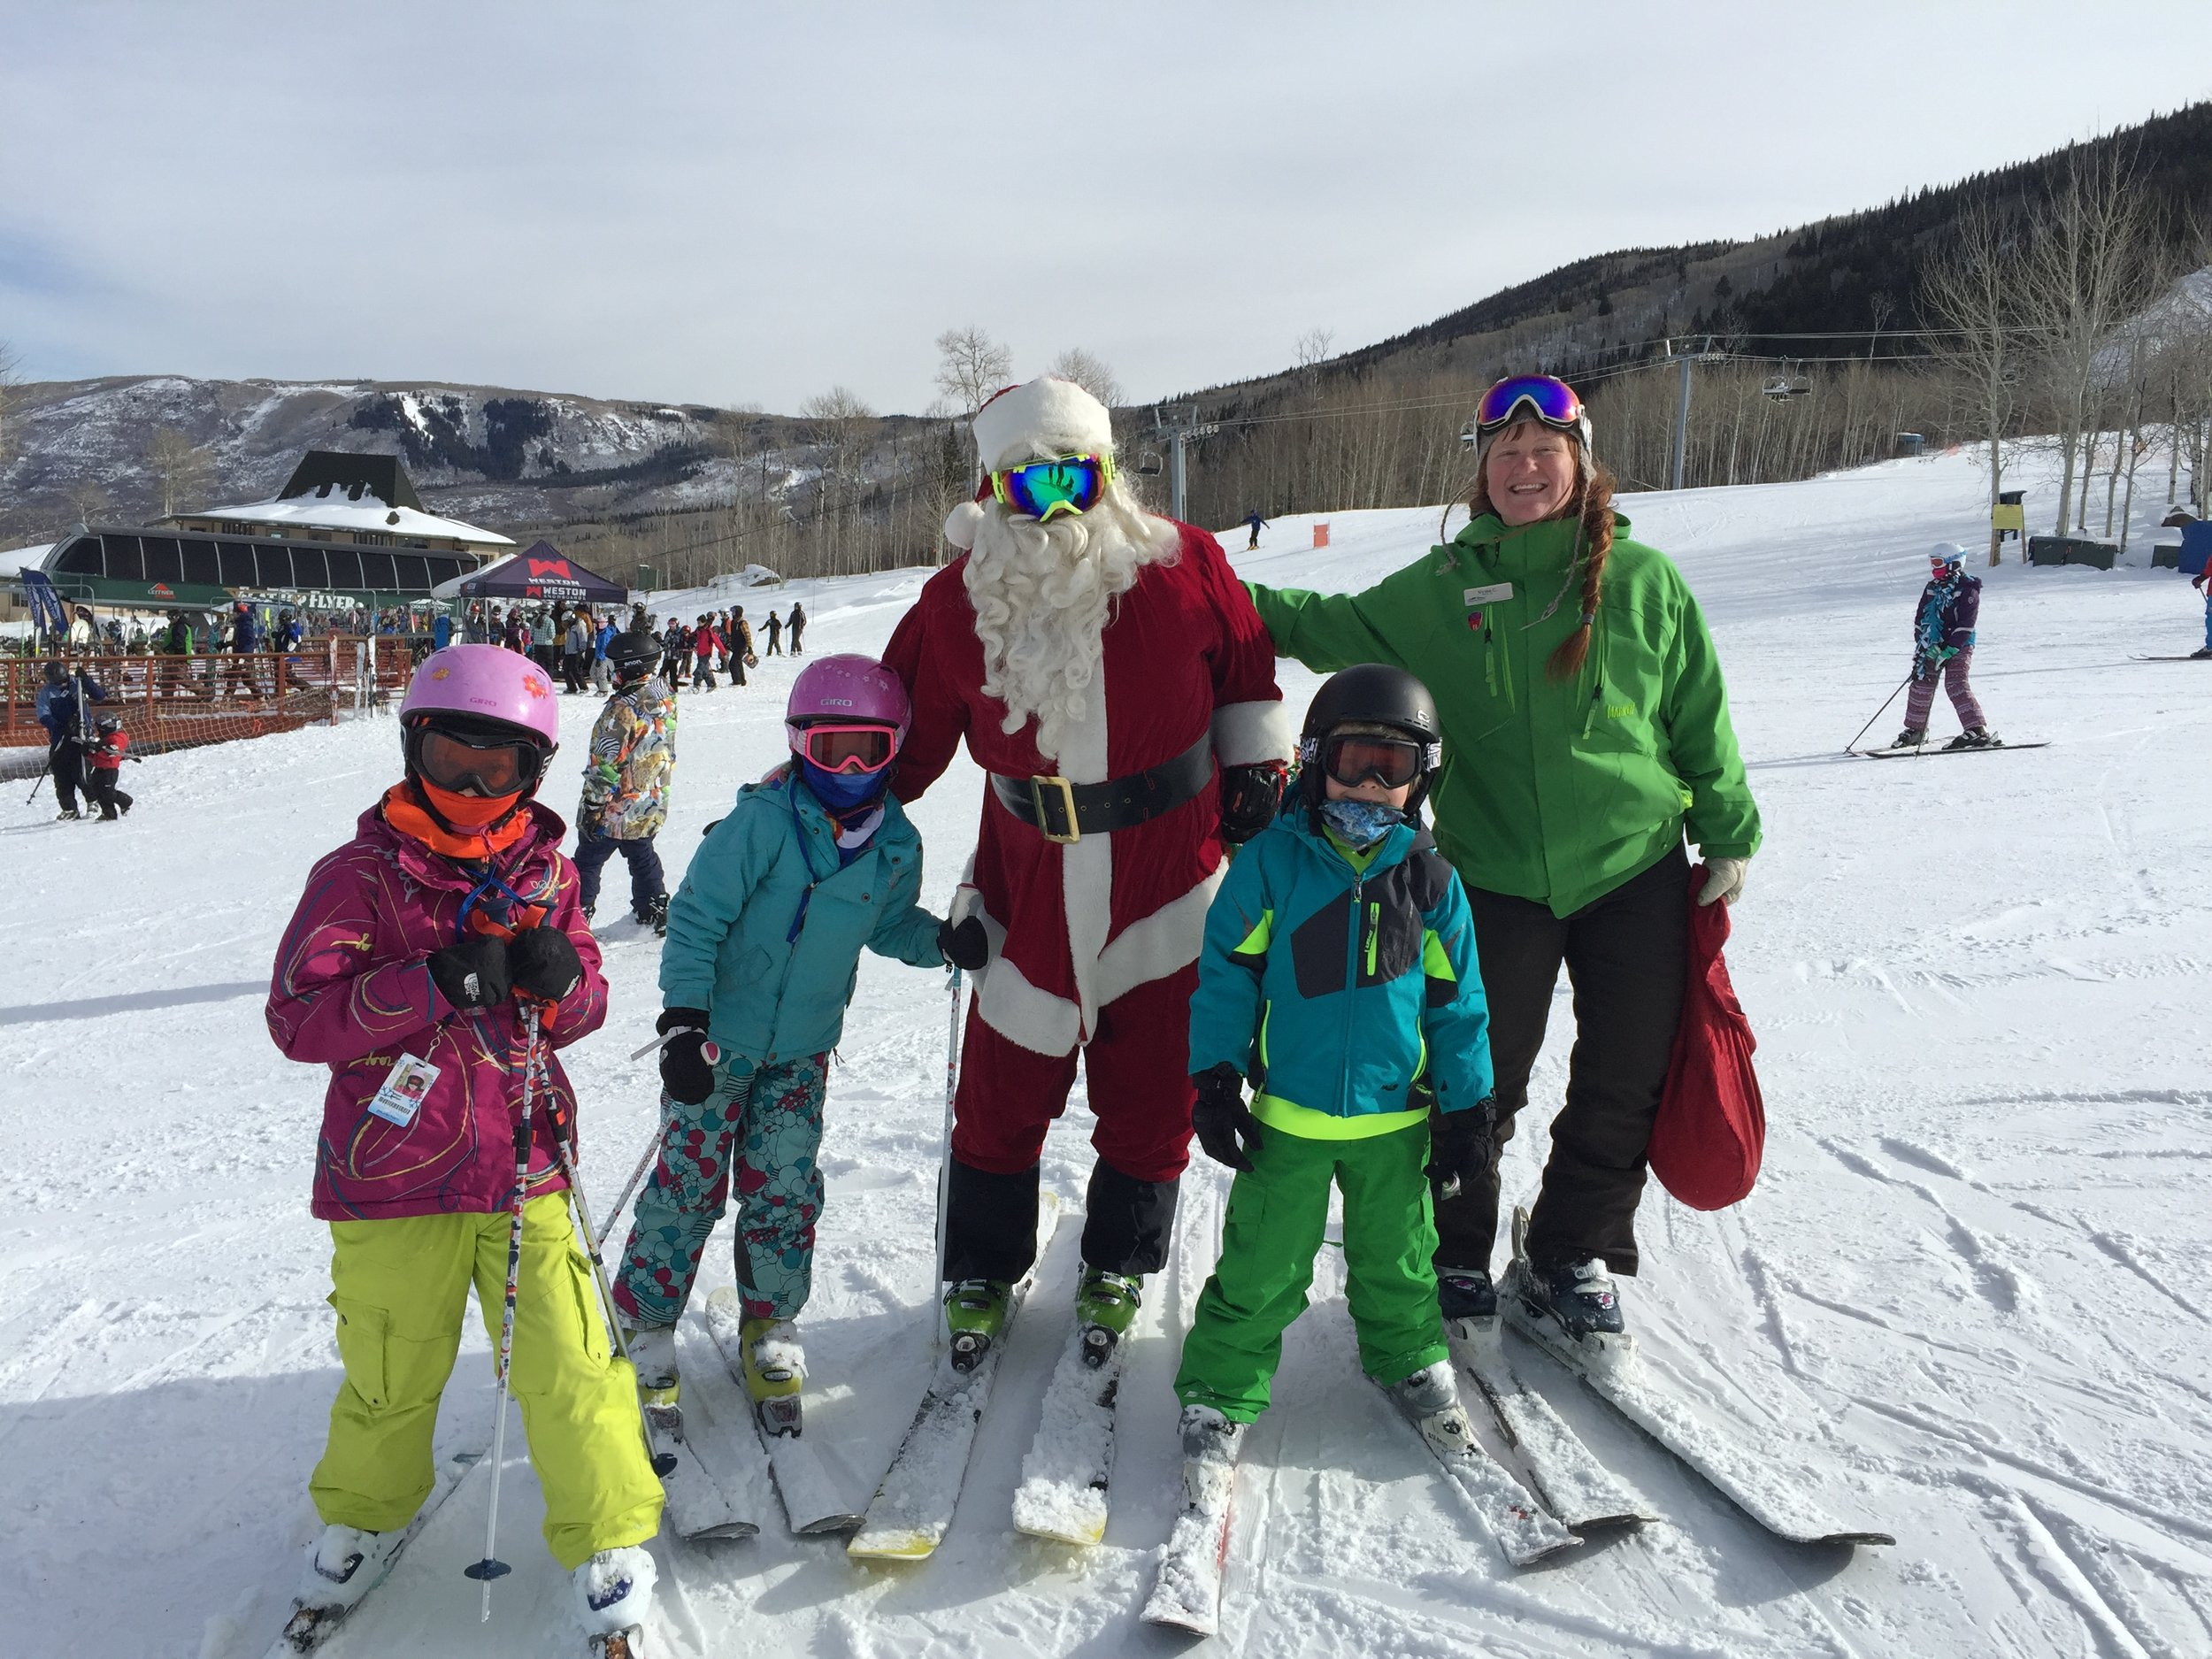 Santa at Powderhorn Resort. Photo: courtesy Colorado Ski Country